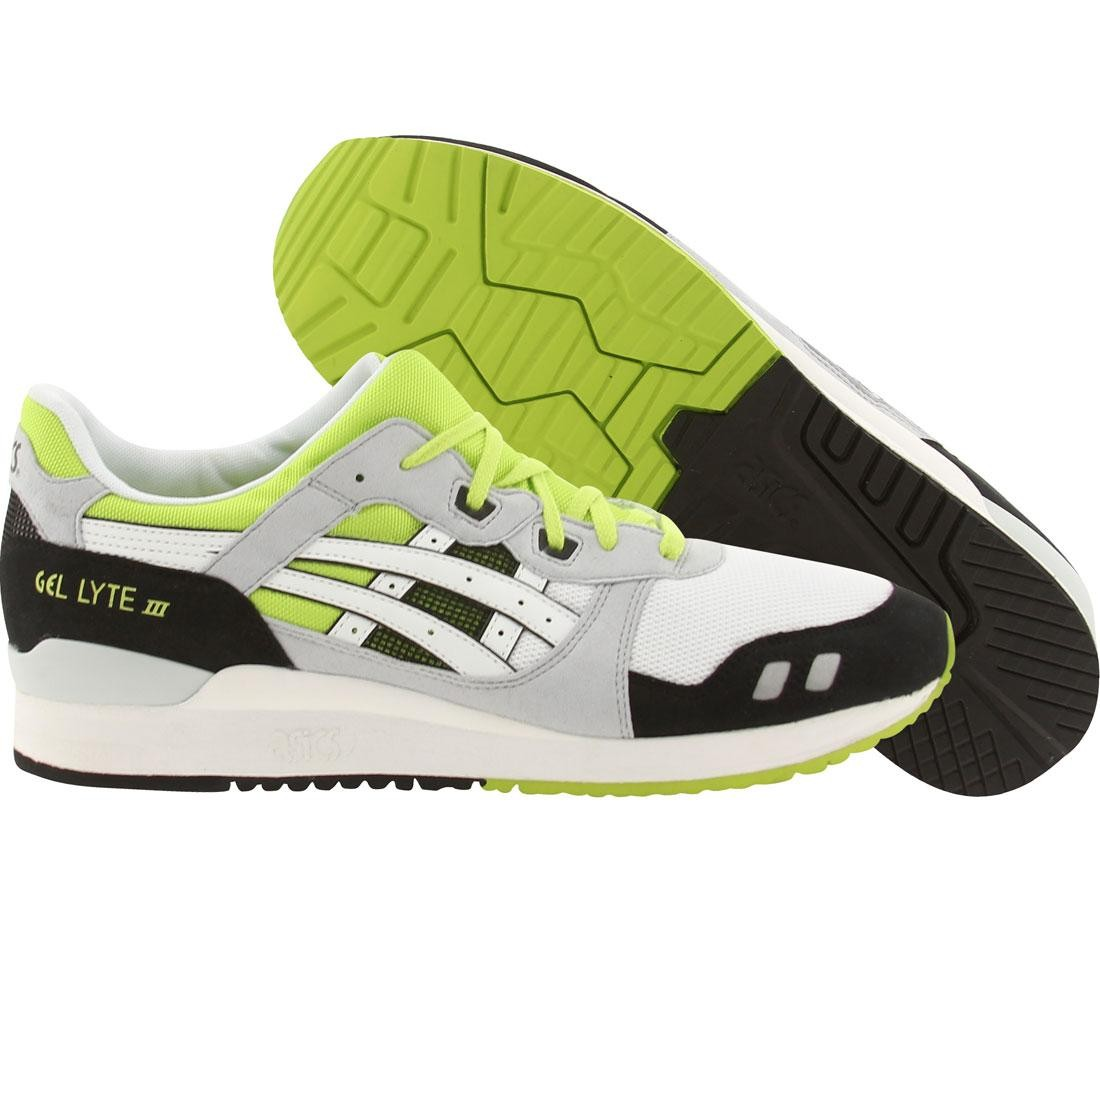 772f070eab Asics Tiger Men Gel-Lyte III (white / black / lime)